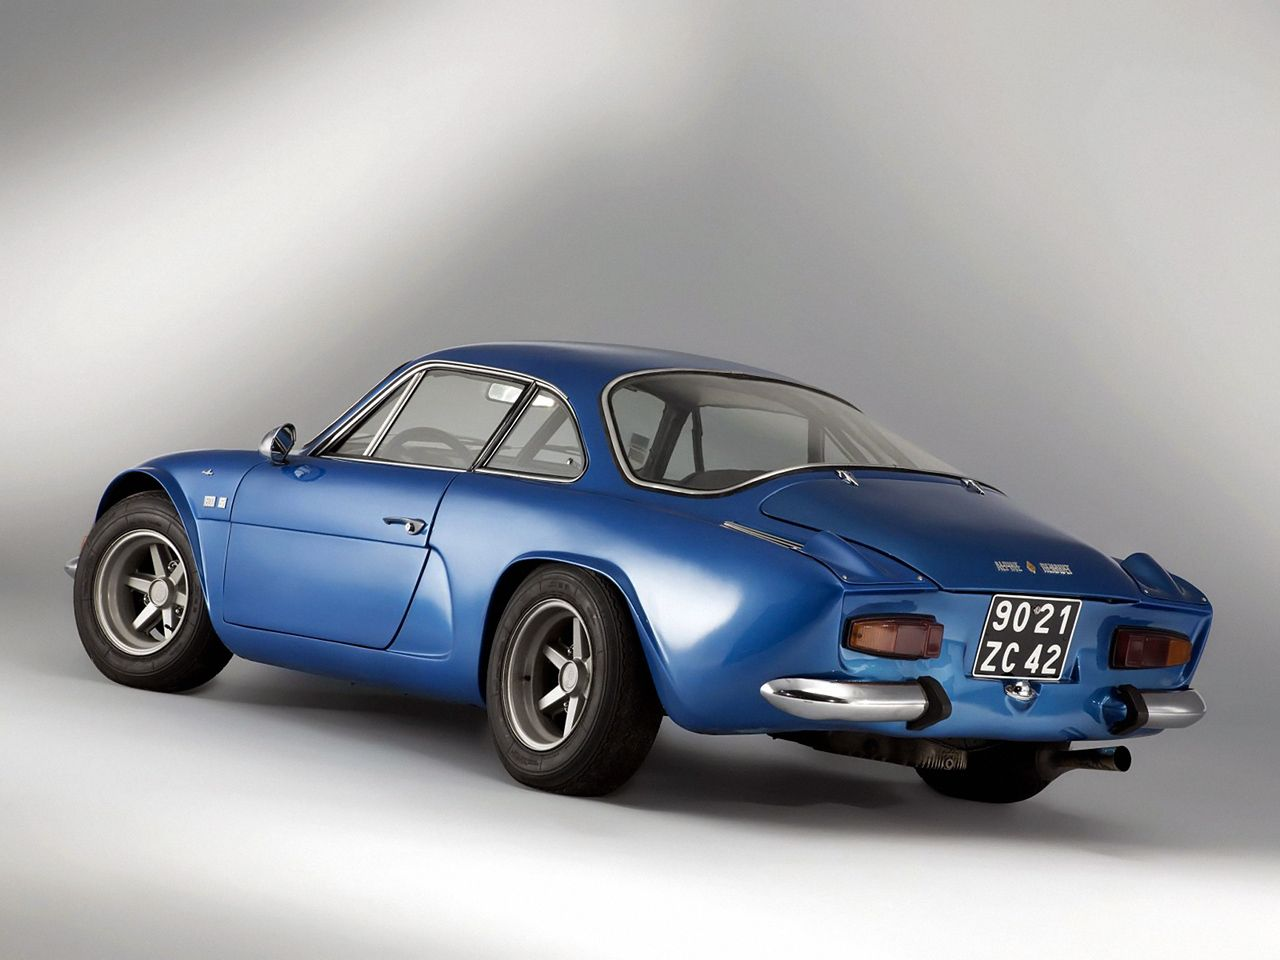 1961 77 renault alpine a110 i always liked these little french 39 attitude monsters 39 for their. Black Bedroom Furniture Sets. Home Design Ideas